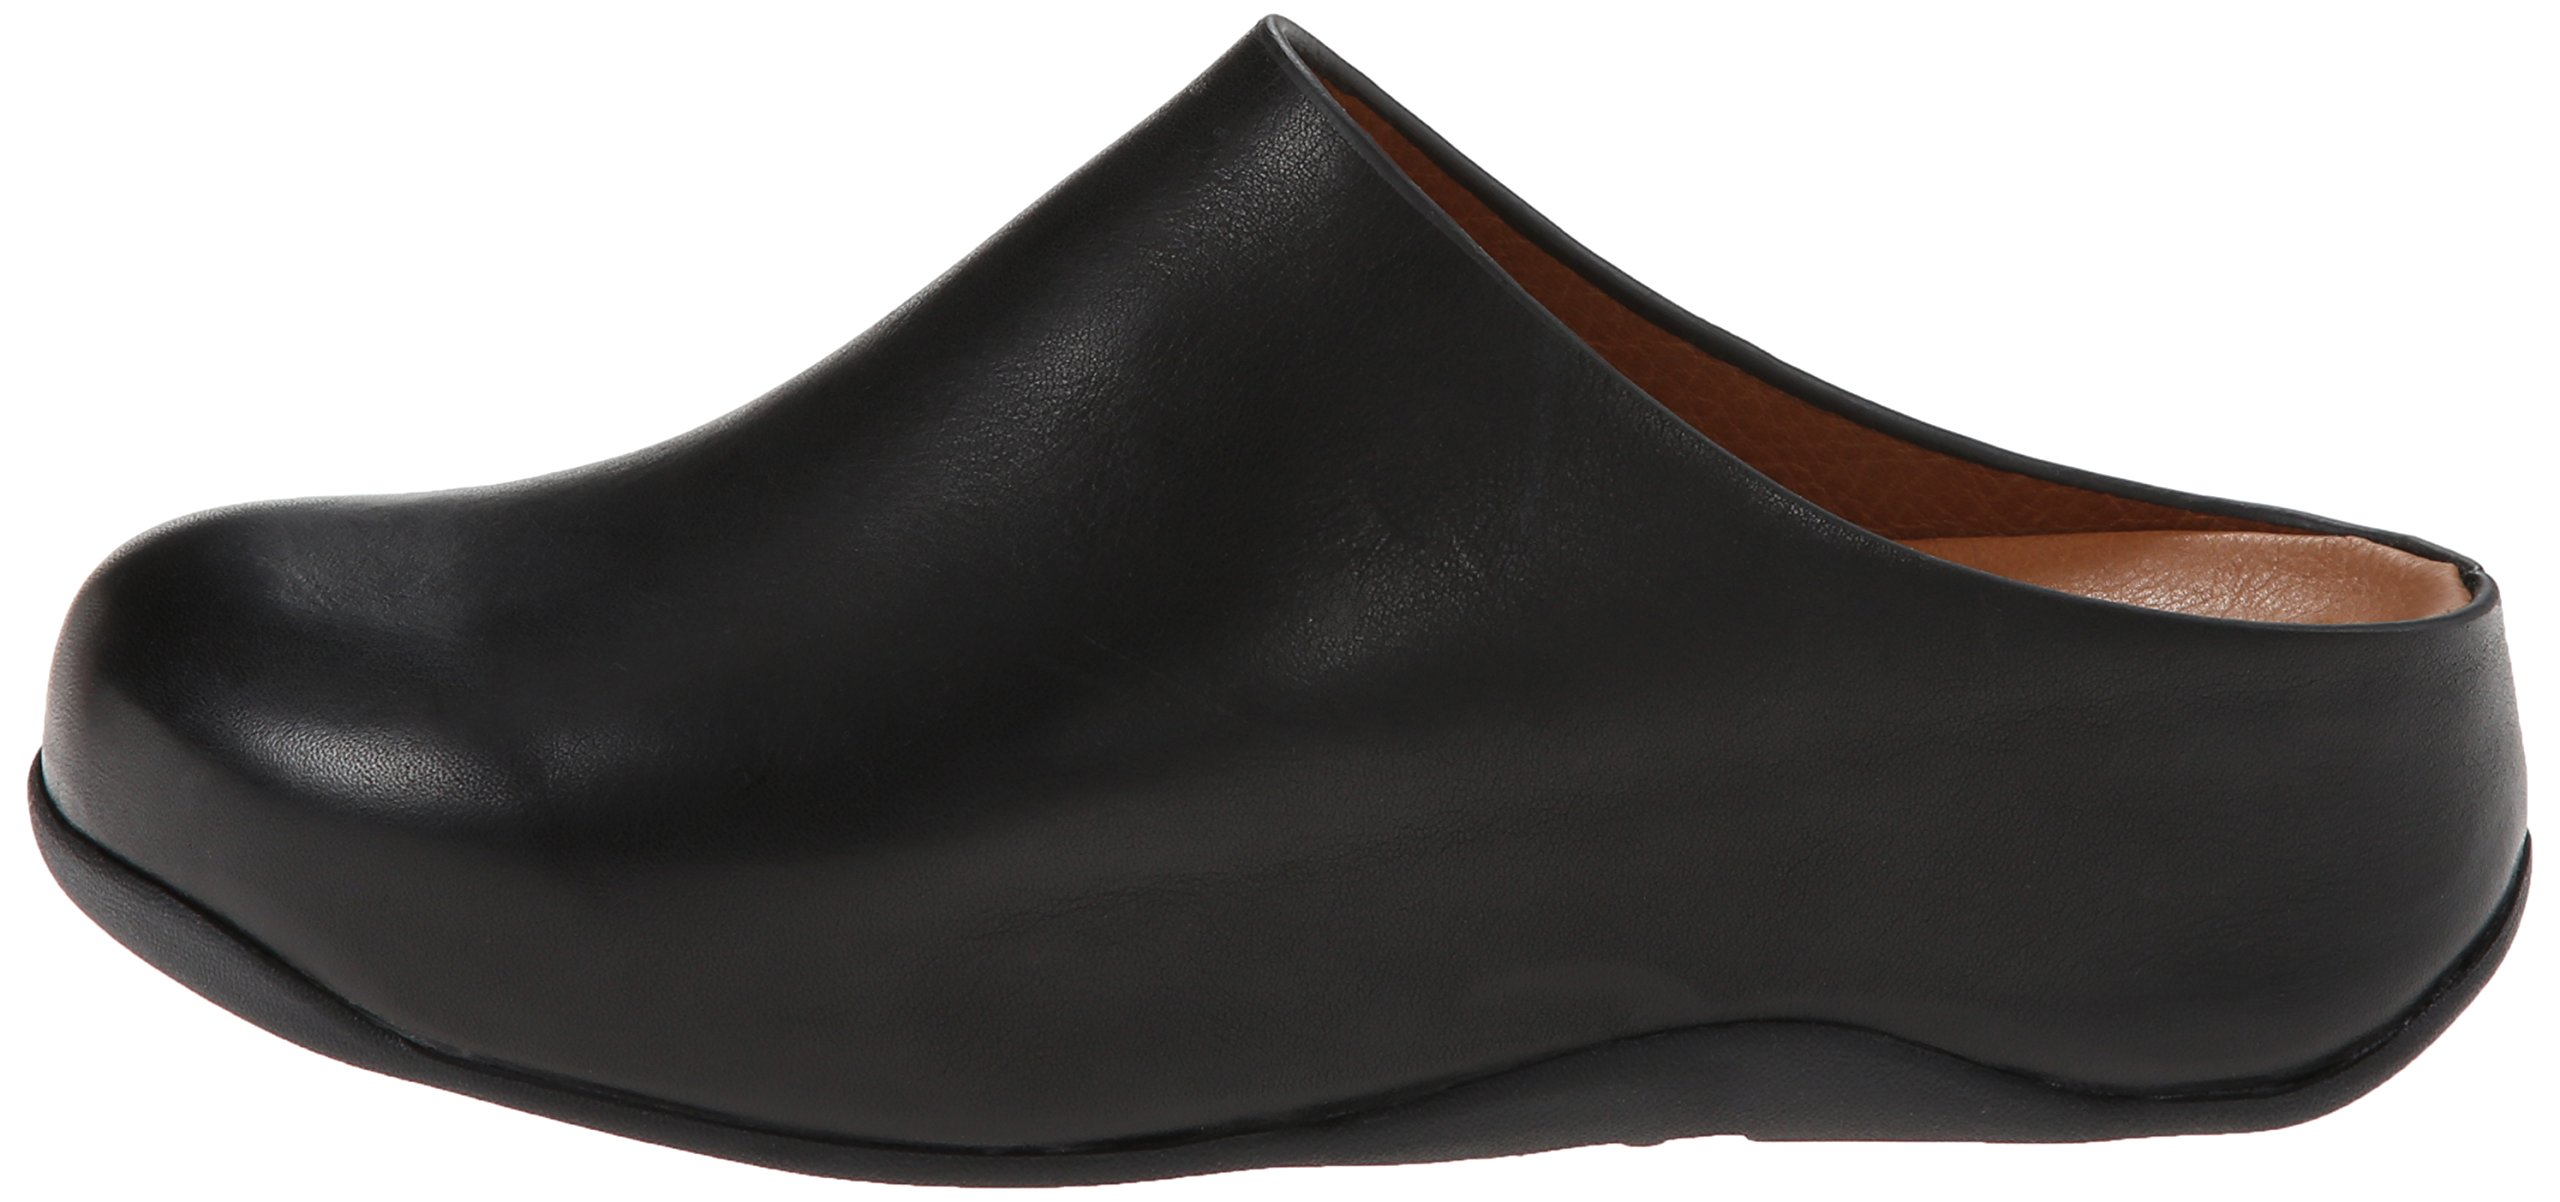 FitFlop Women's Shuv Leather Clog,Black,5 M US by FitFlop (Image #5)